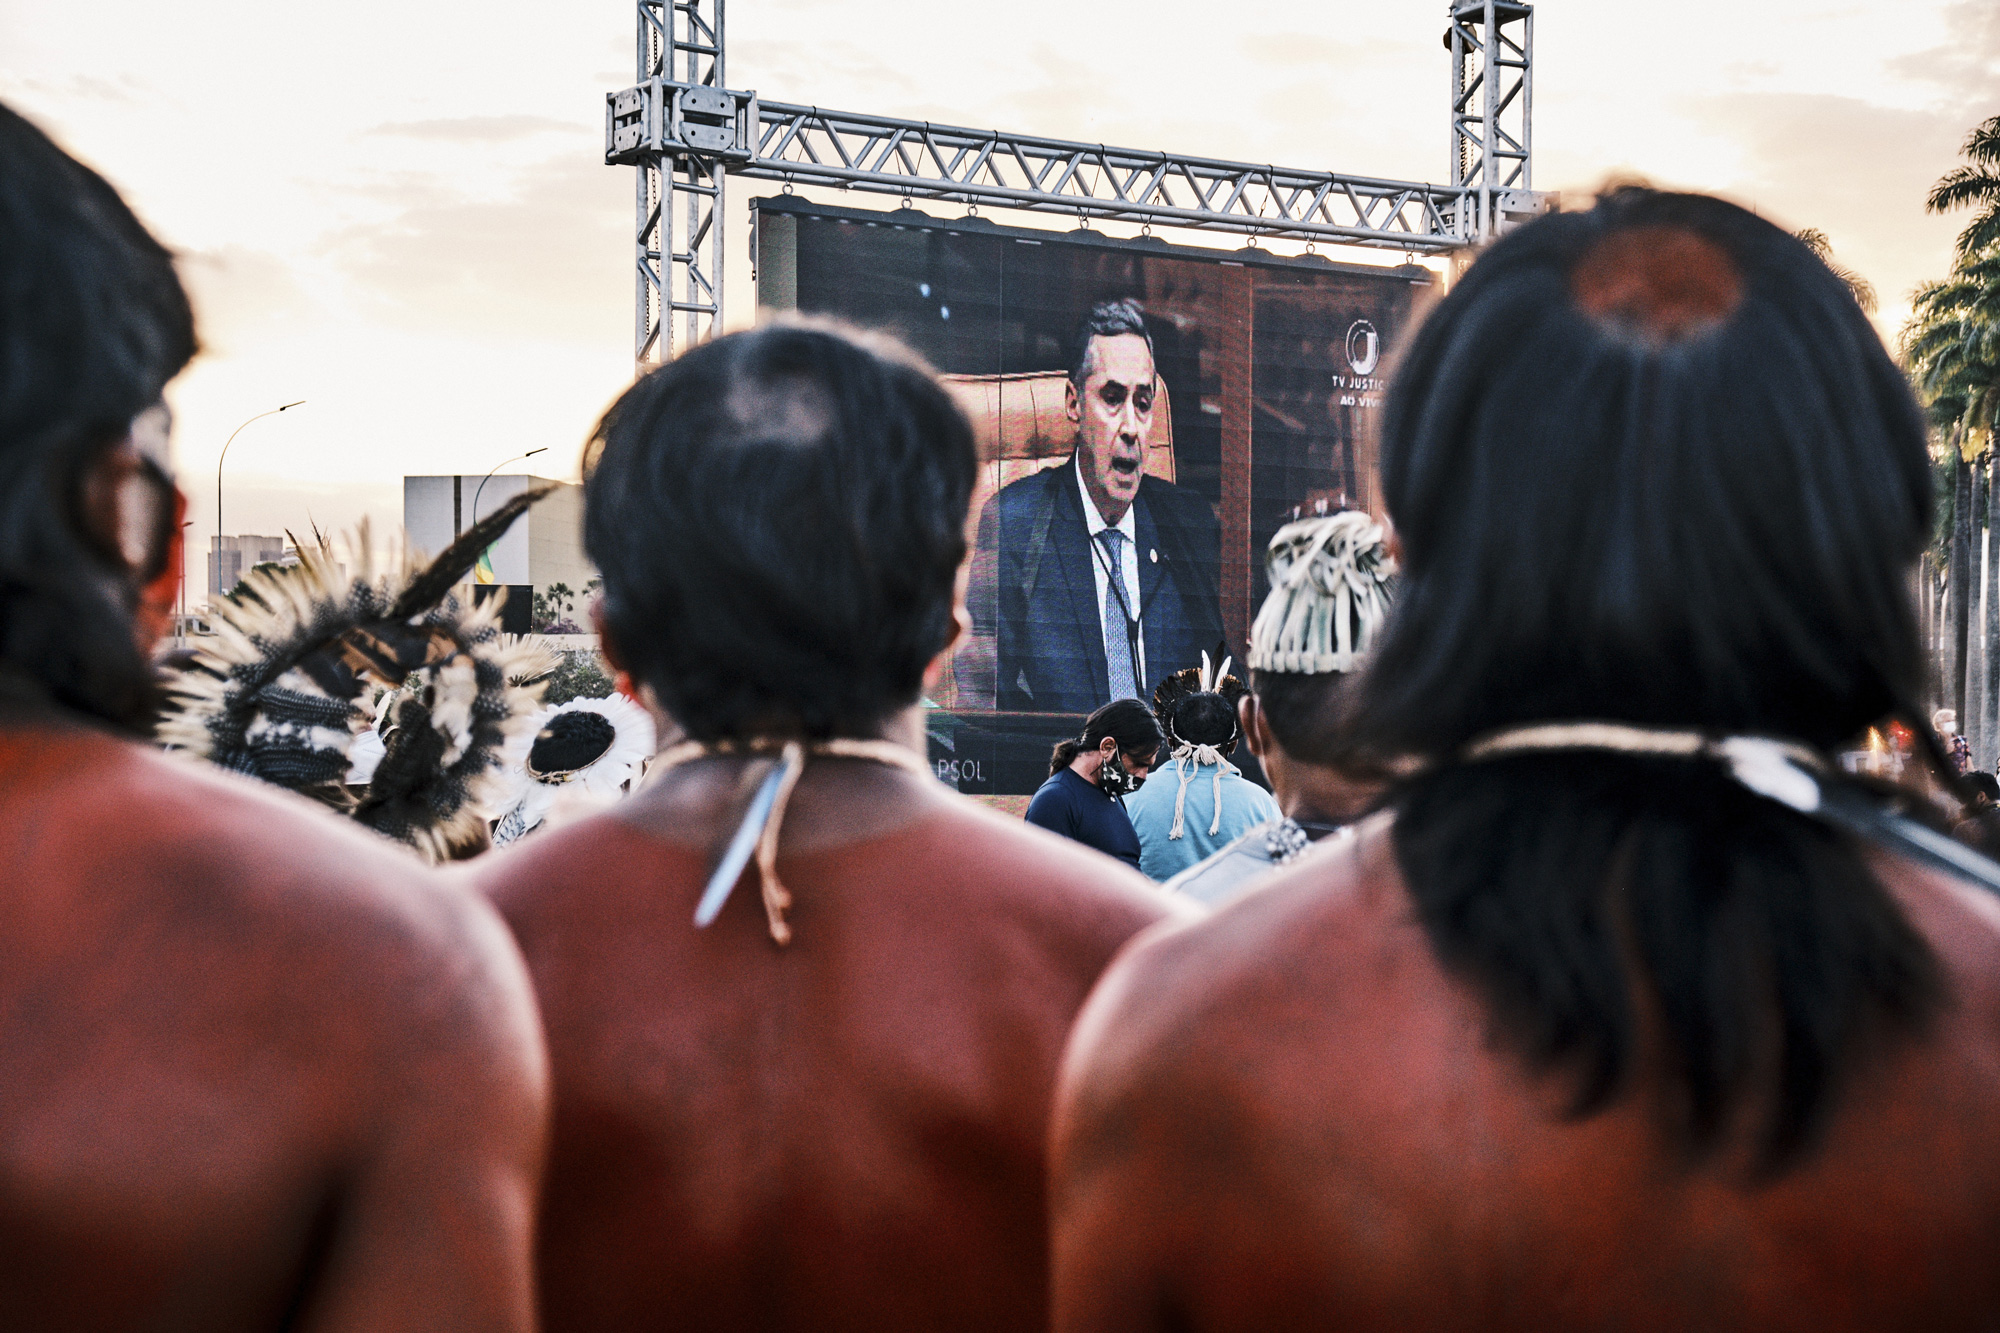 A screen shows Supreme Court Justice LuisRobertoBarroso during a protest against a land demarcation judgment outside the Supreme Court building in Brasilia, Brazil, on Wednesday, Aug. 25, 2021. Indigenous protesters have gathered in Brasilia this week to protest a Supreme Court judgment on Wednesday that could take away ancestral lands. Photographer: Gustavo Minas/Bloomberg via Getty Images